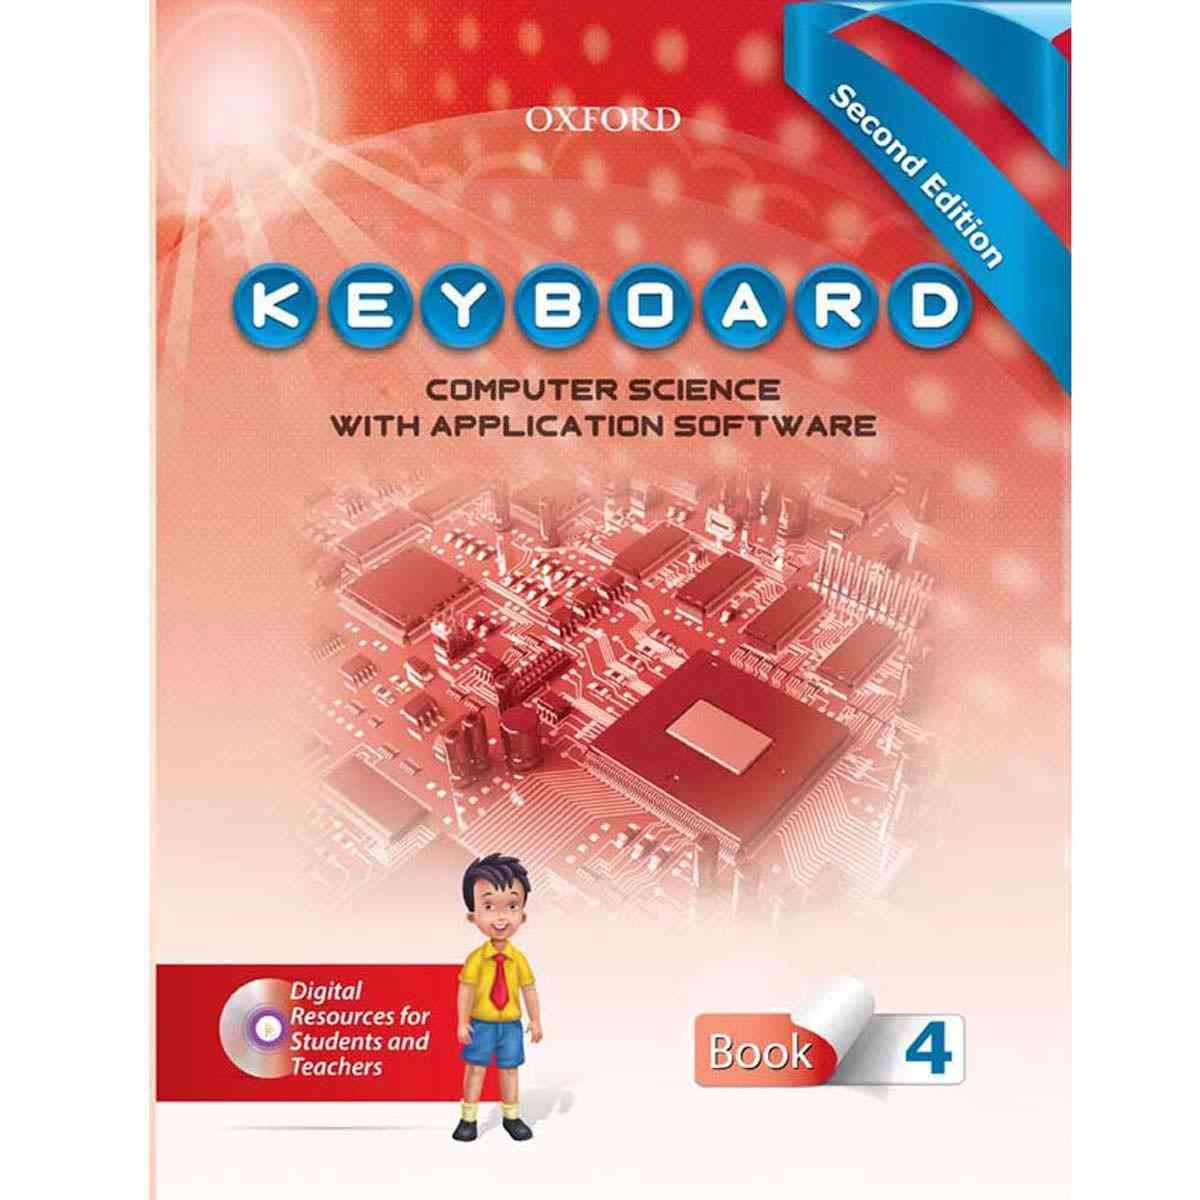 Oxford Books Keyboard Book 4 Second Edition